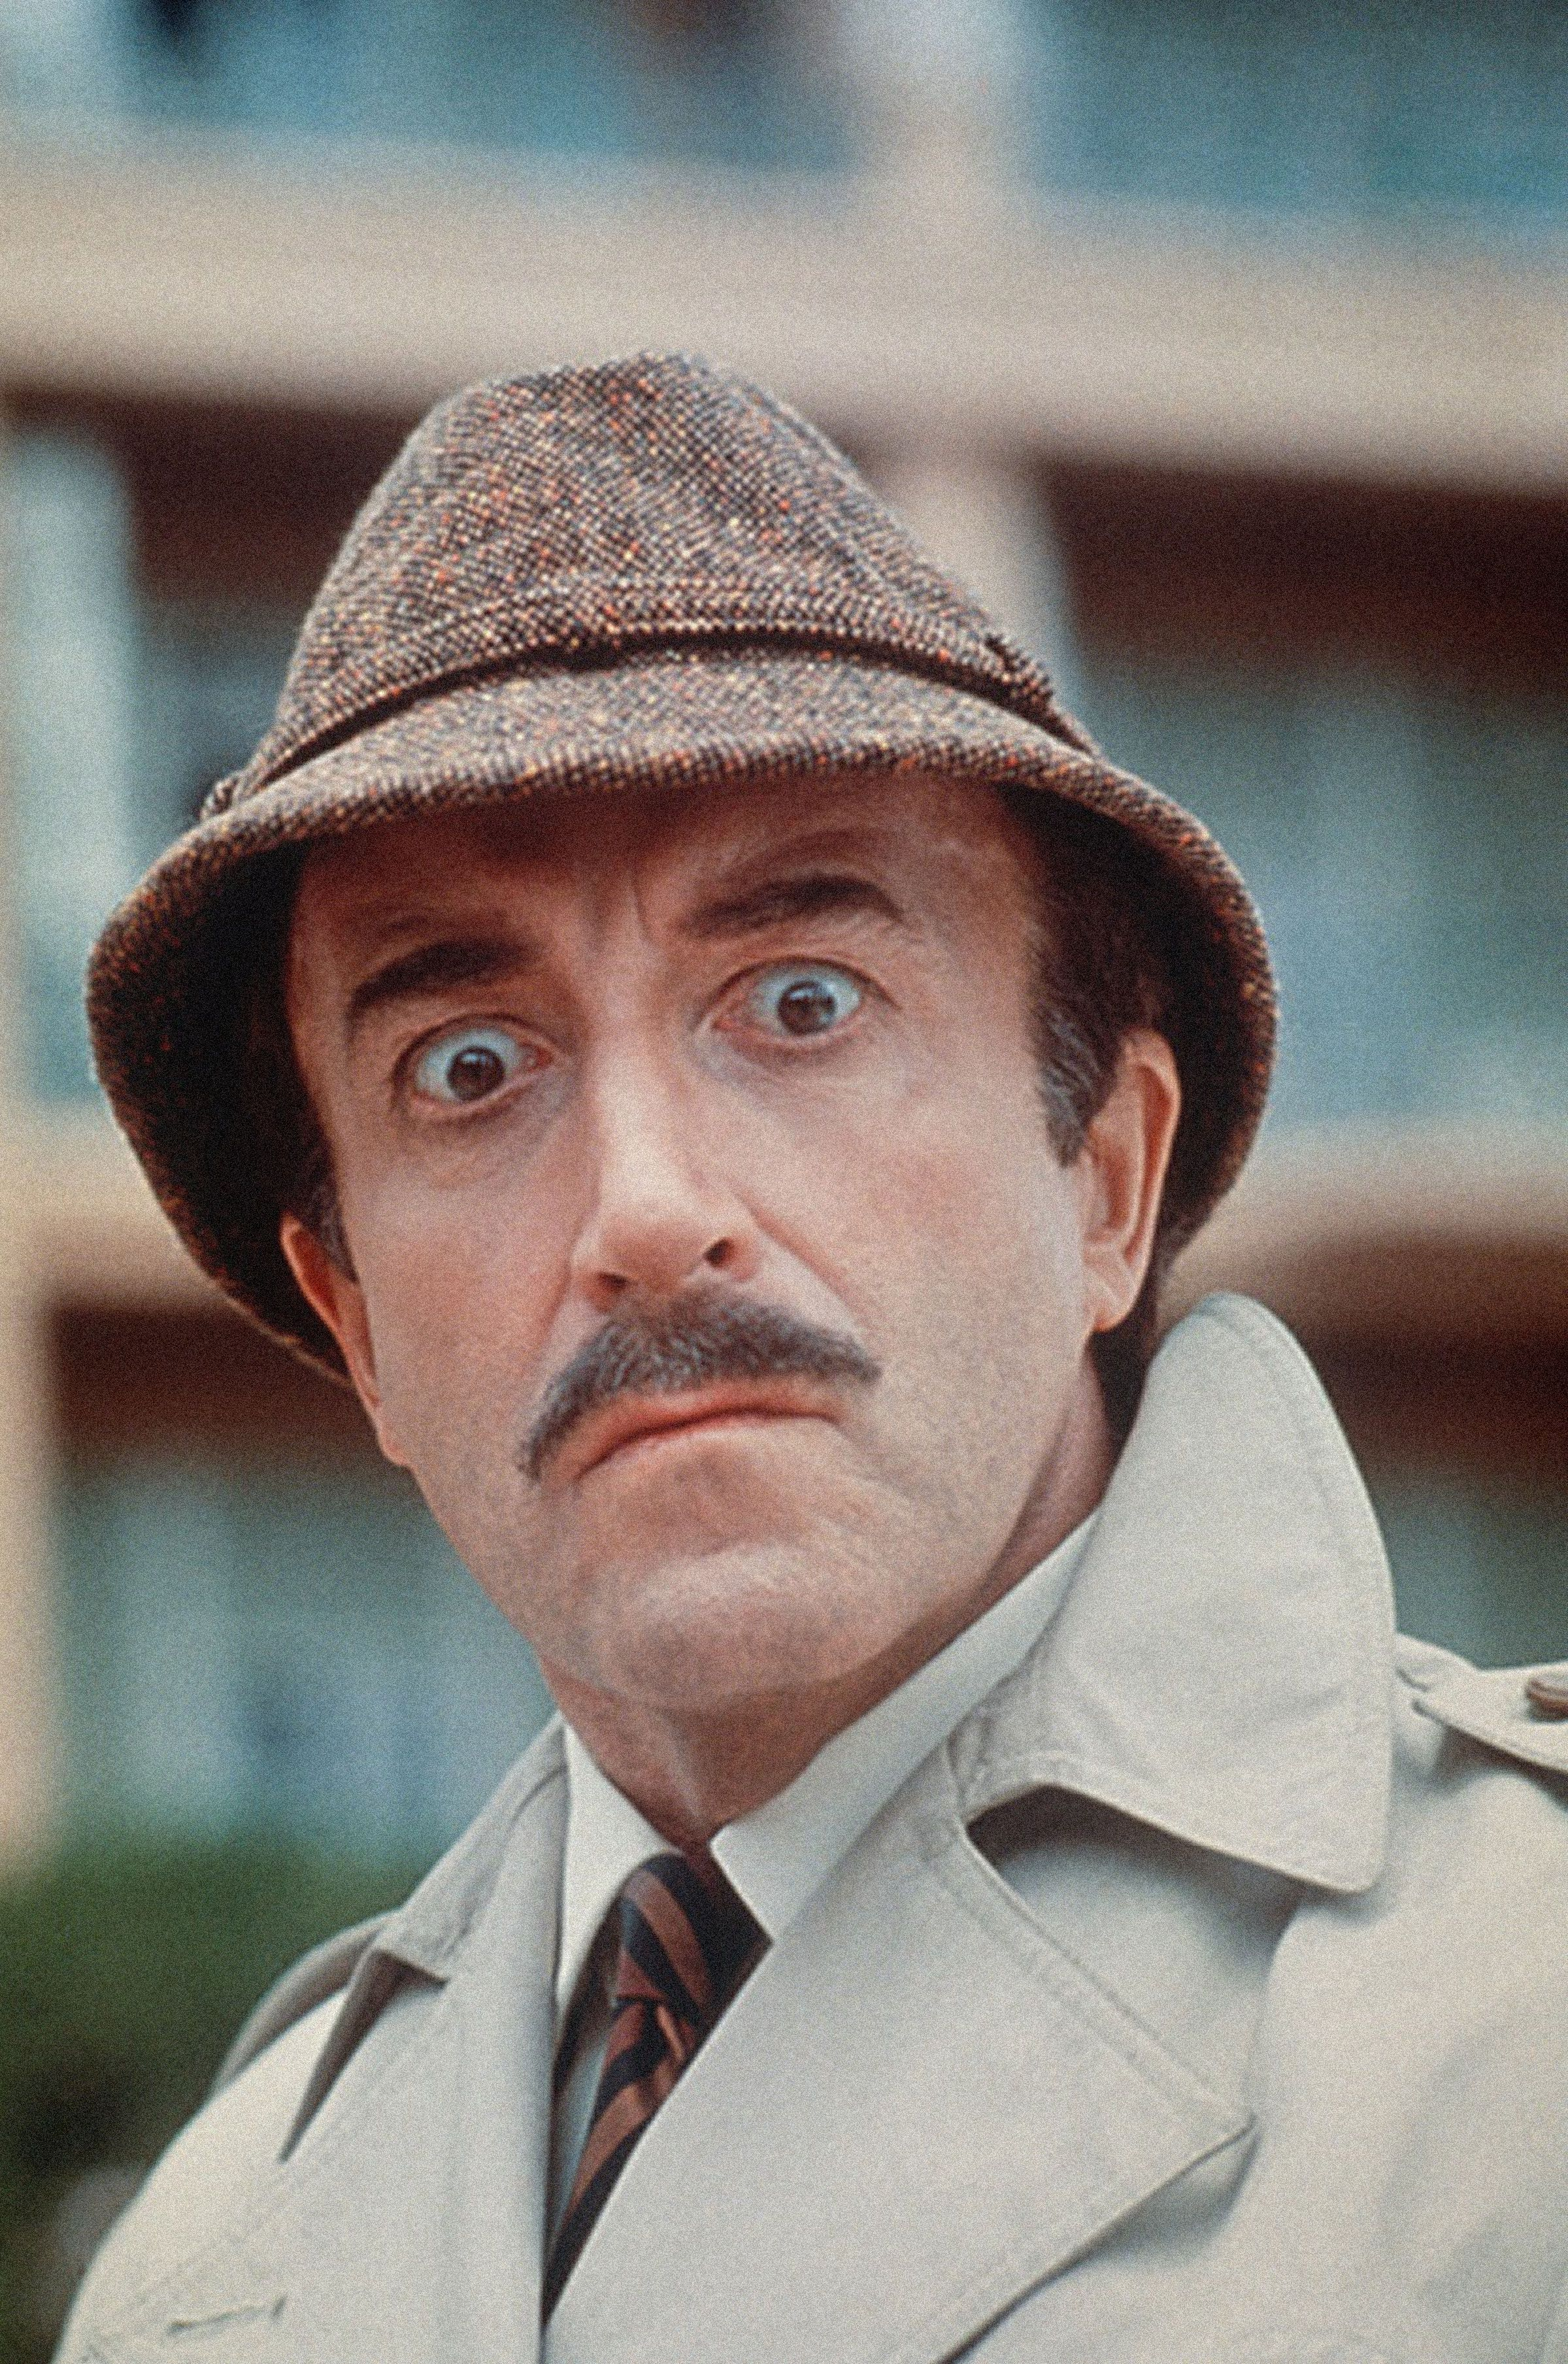 ecb3521828446 The Pink Panther Film Collection Starring Peter Sellers in 2019 ...